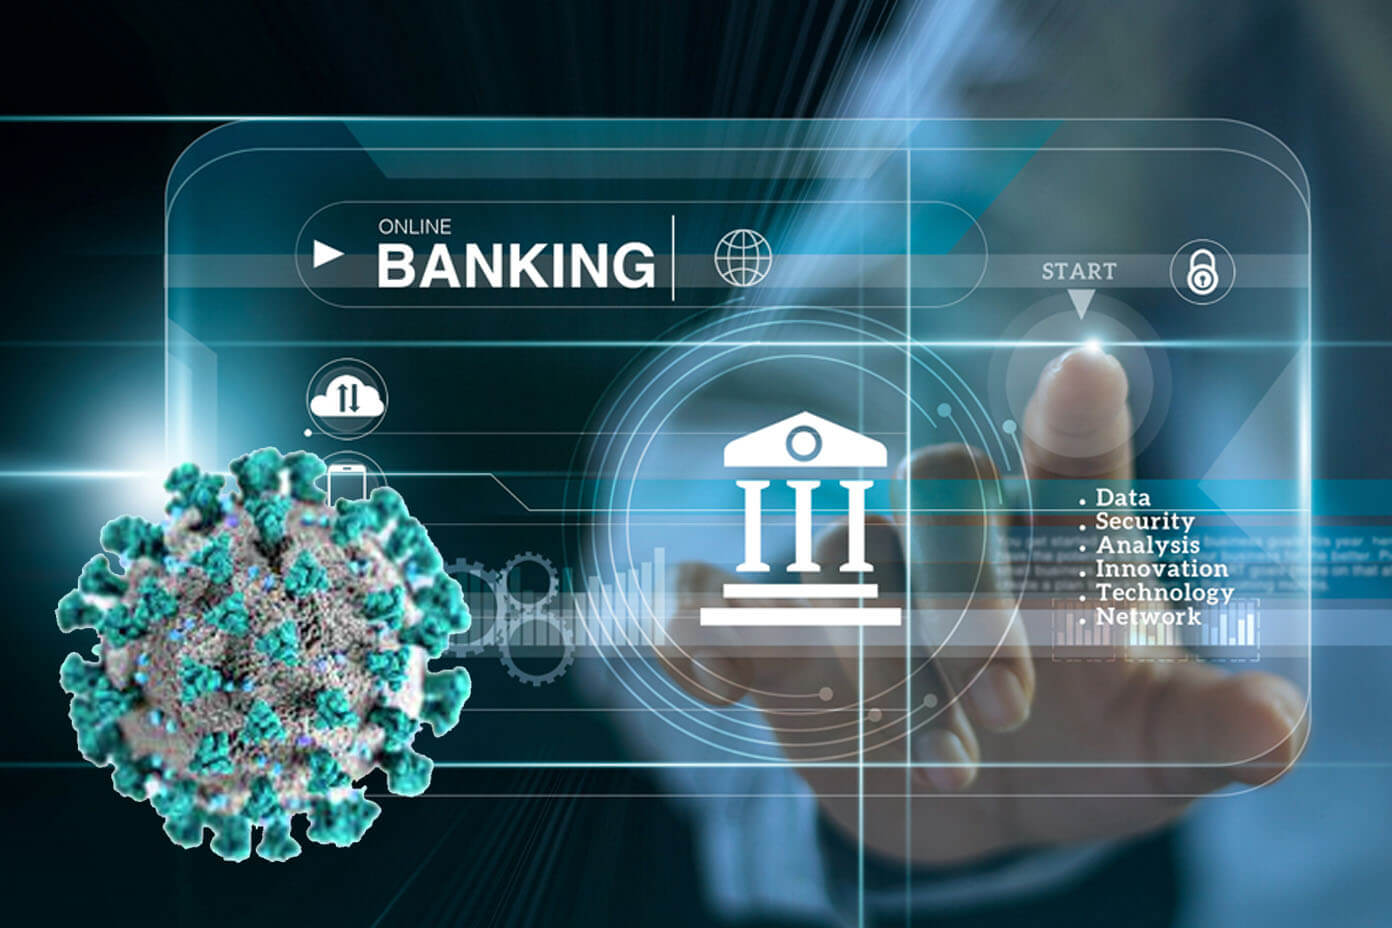 Deleting Digital Banking Threats During COVID